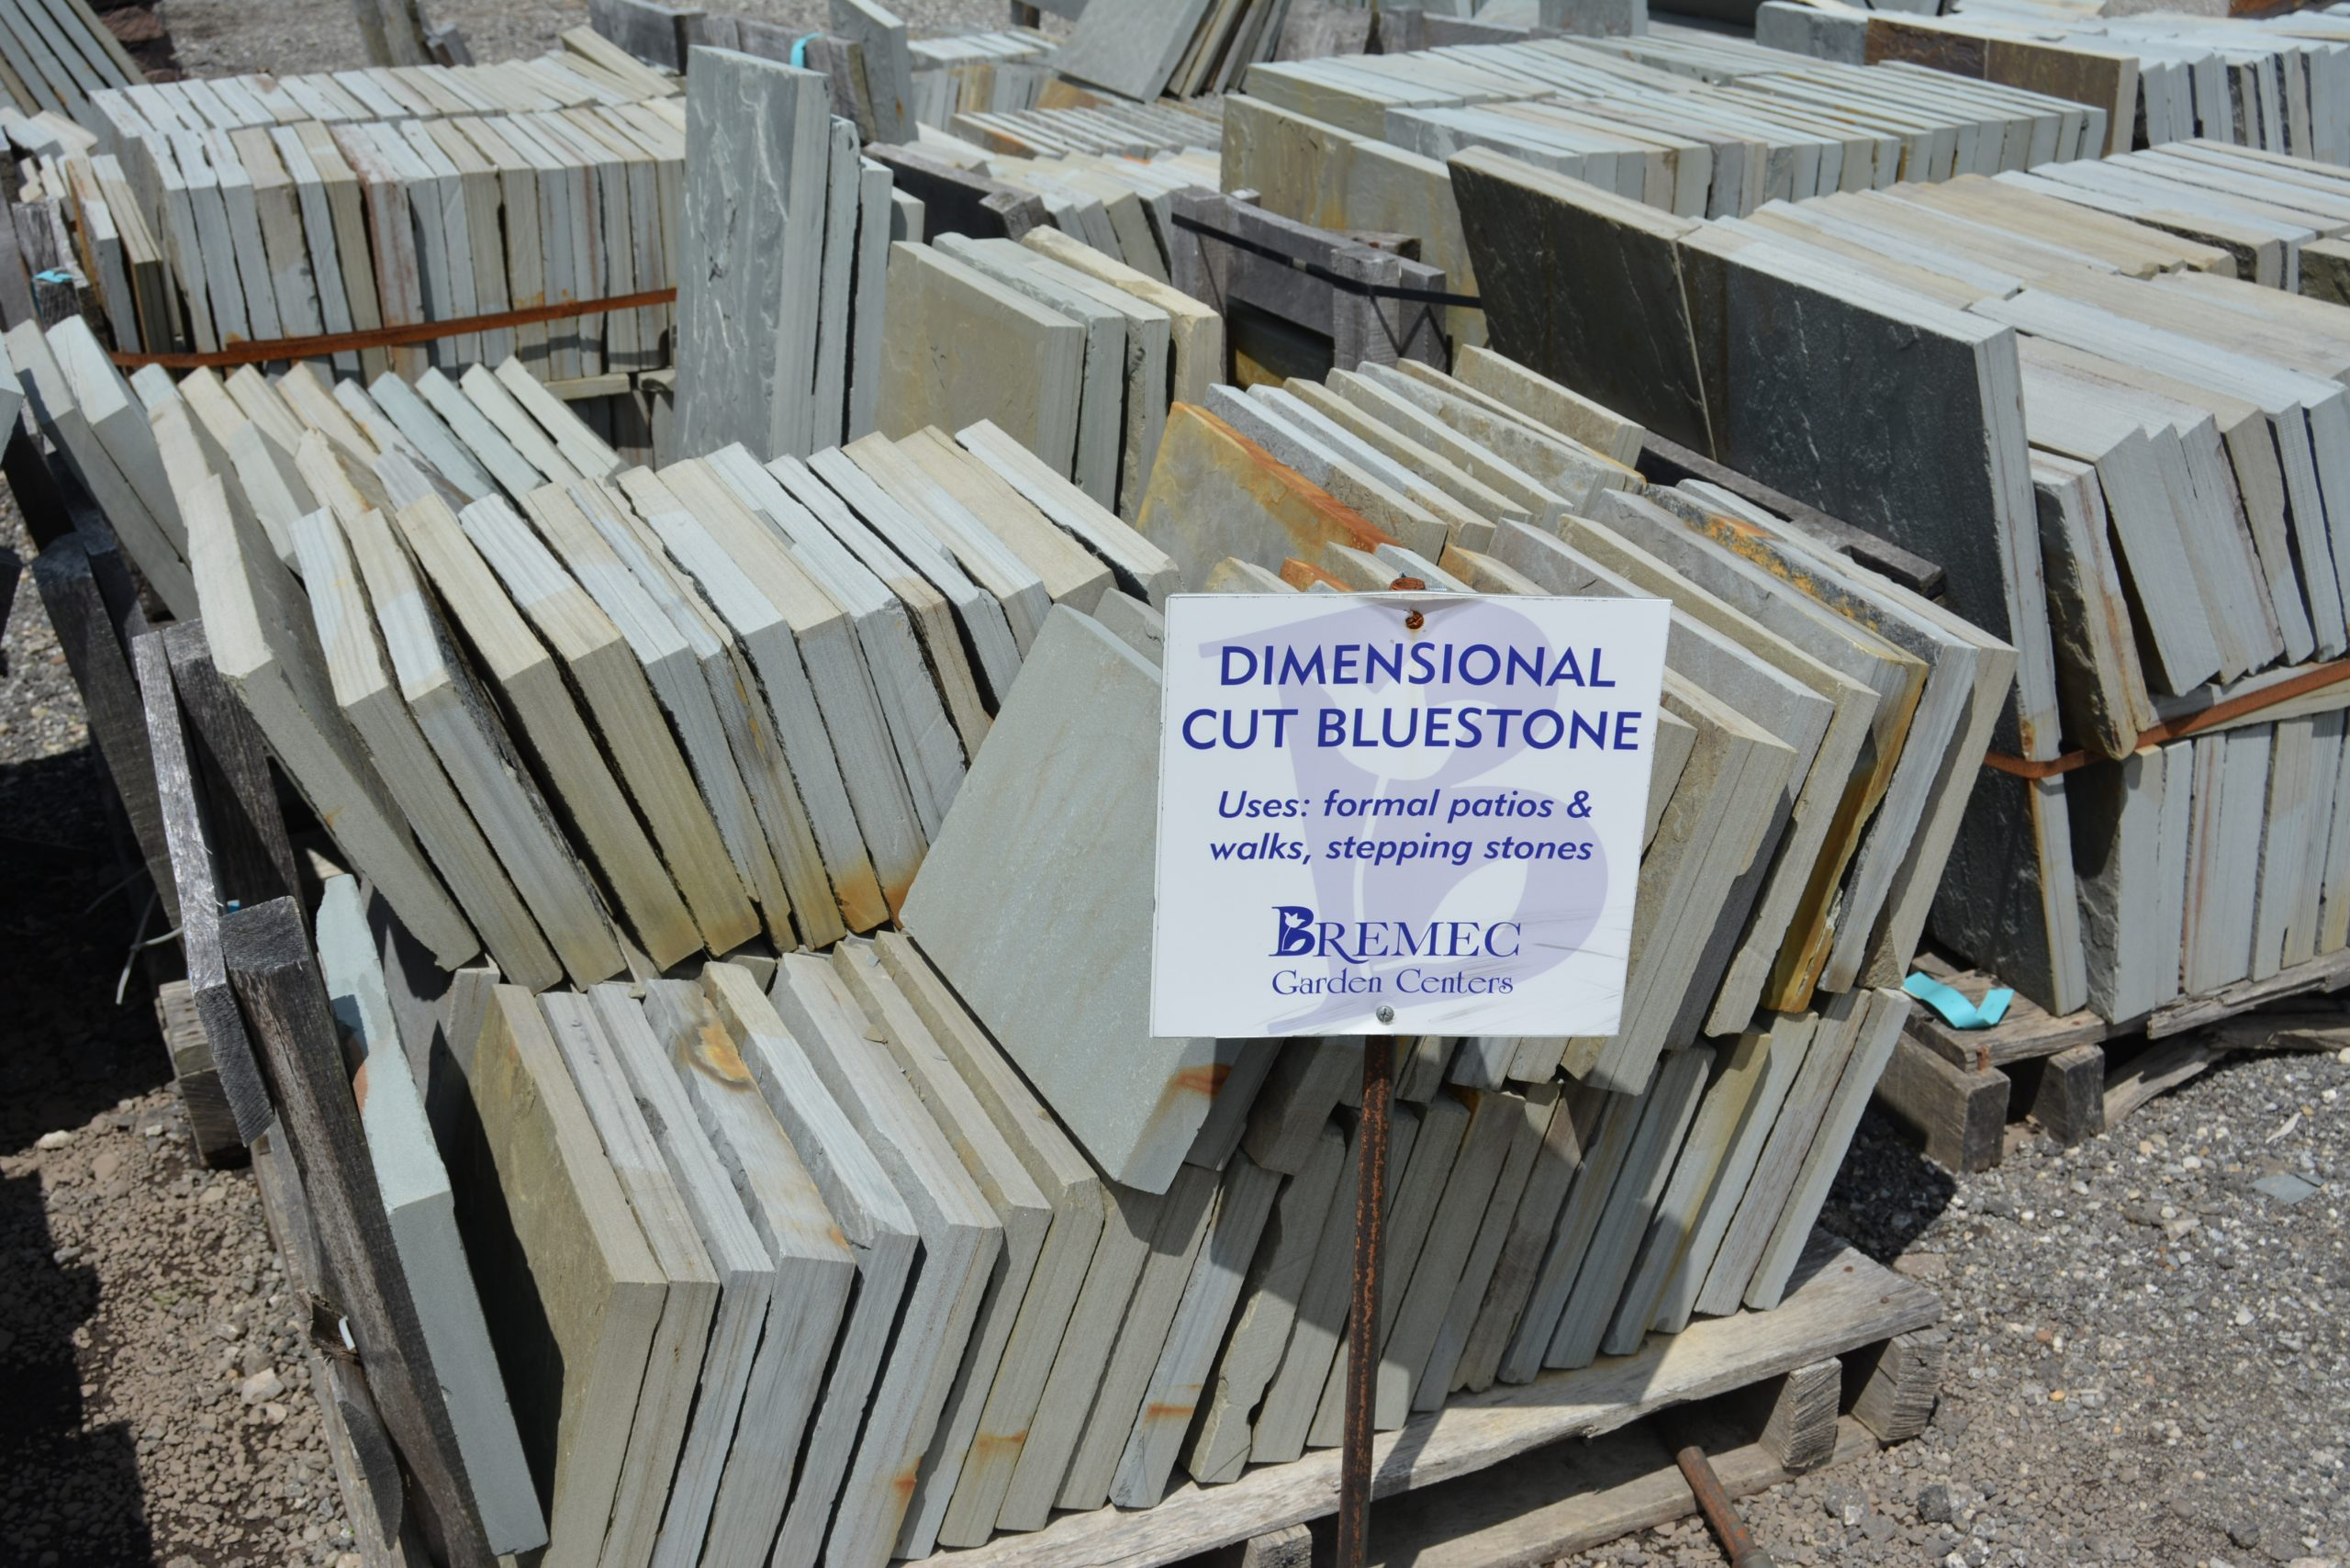 Dimensional Cut Bluestone